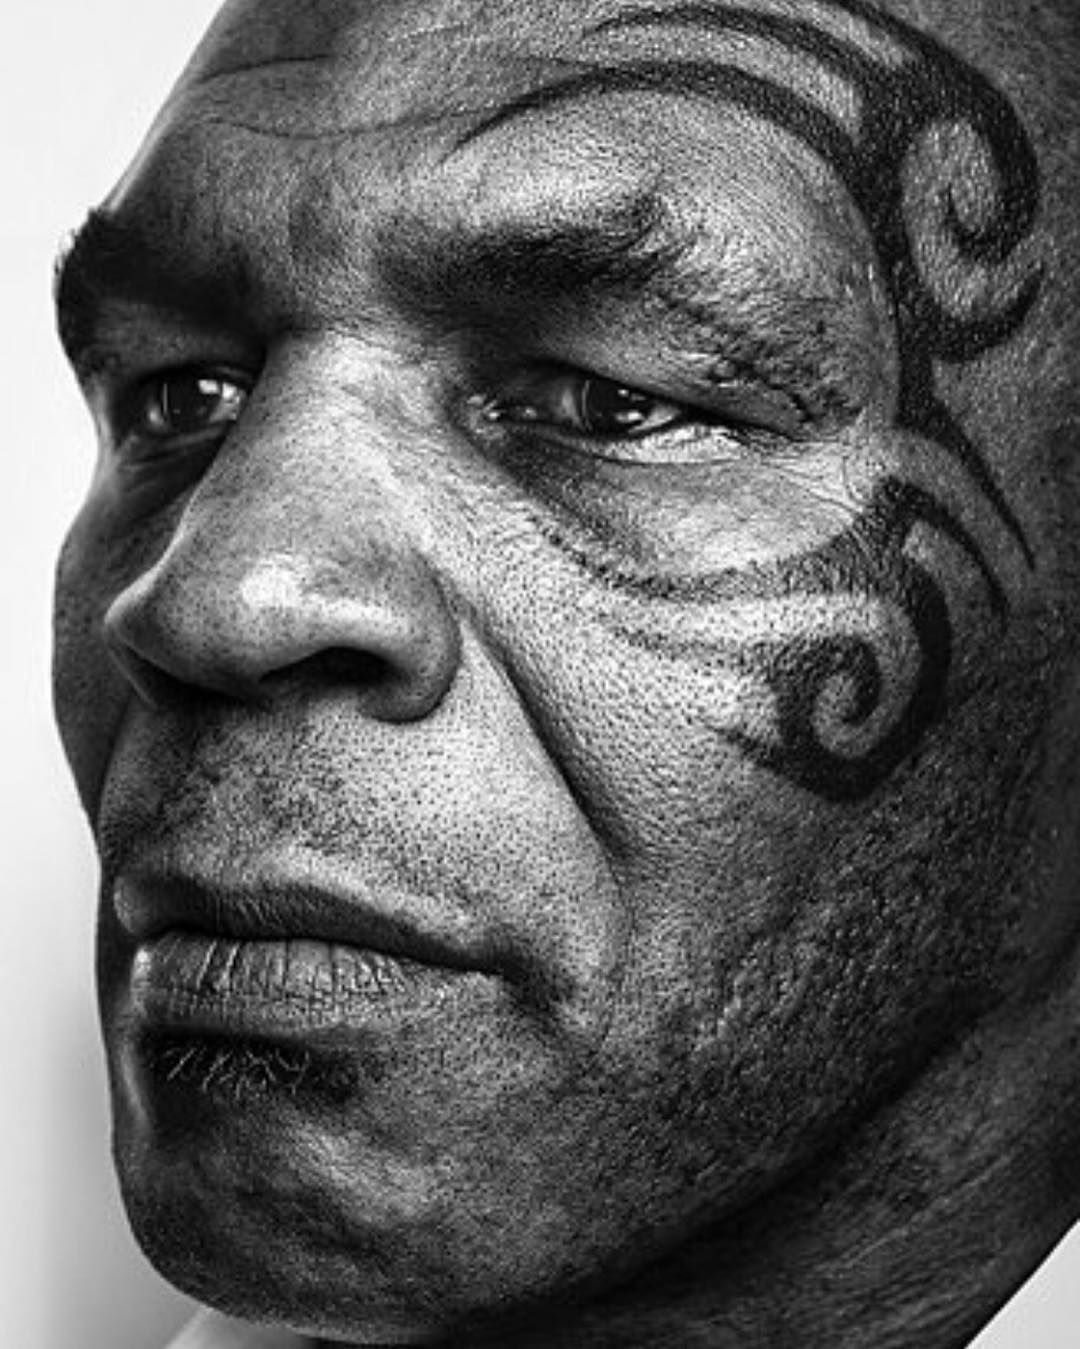 miketyson by marcogrob by crimebydesign Mike tyson